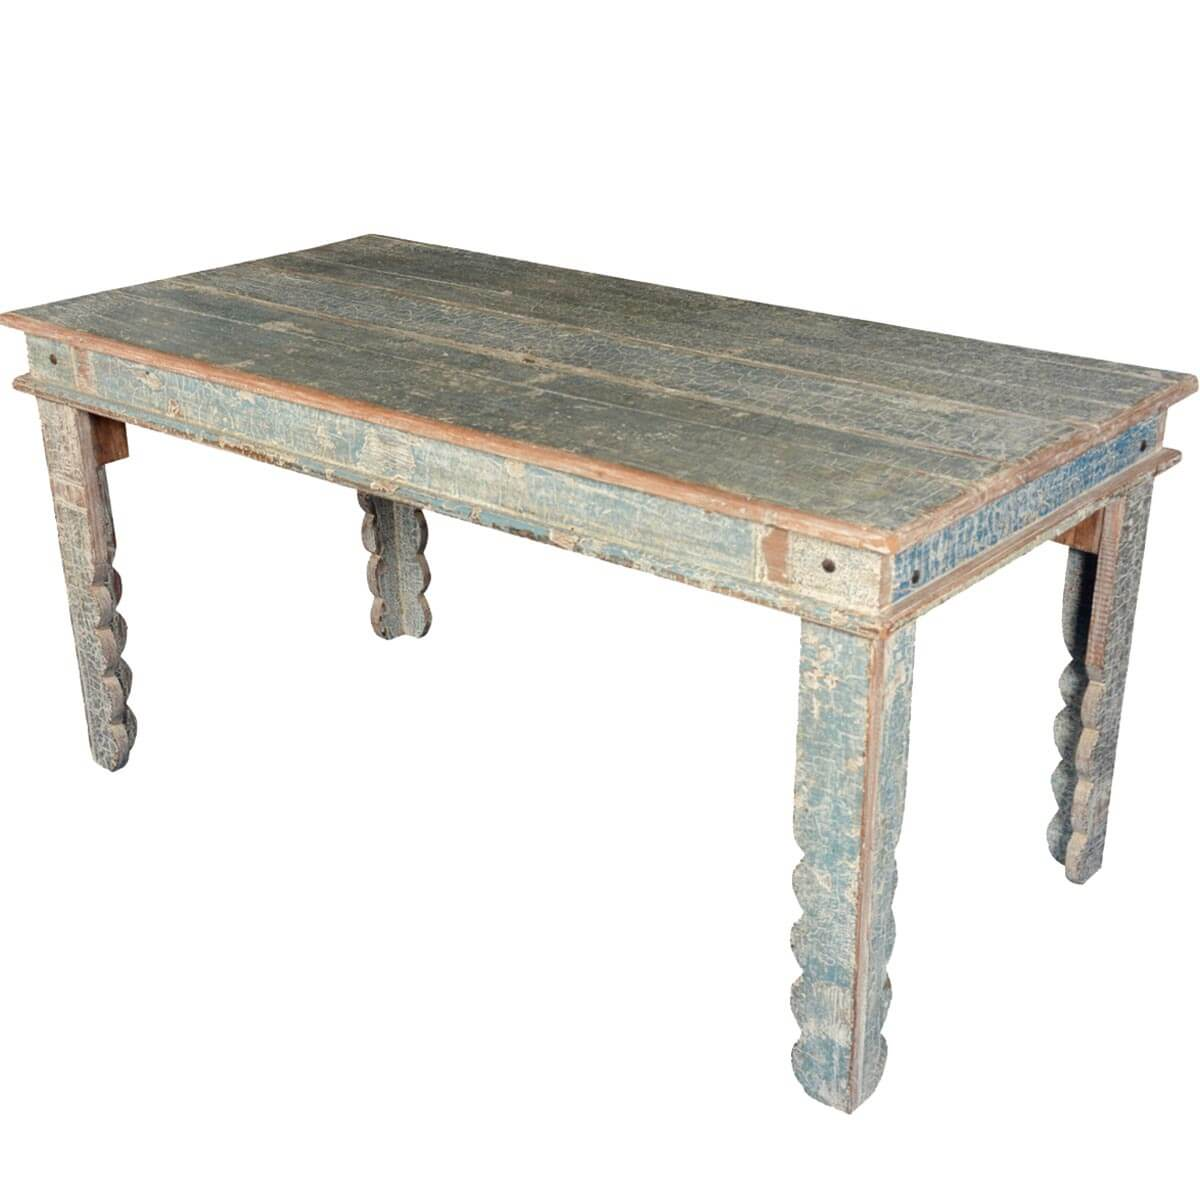 Country Blue Reclaimed Wood Scalloped Legs Dining Table